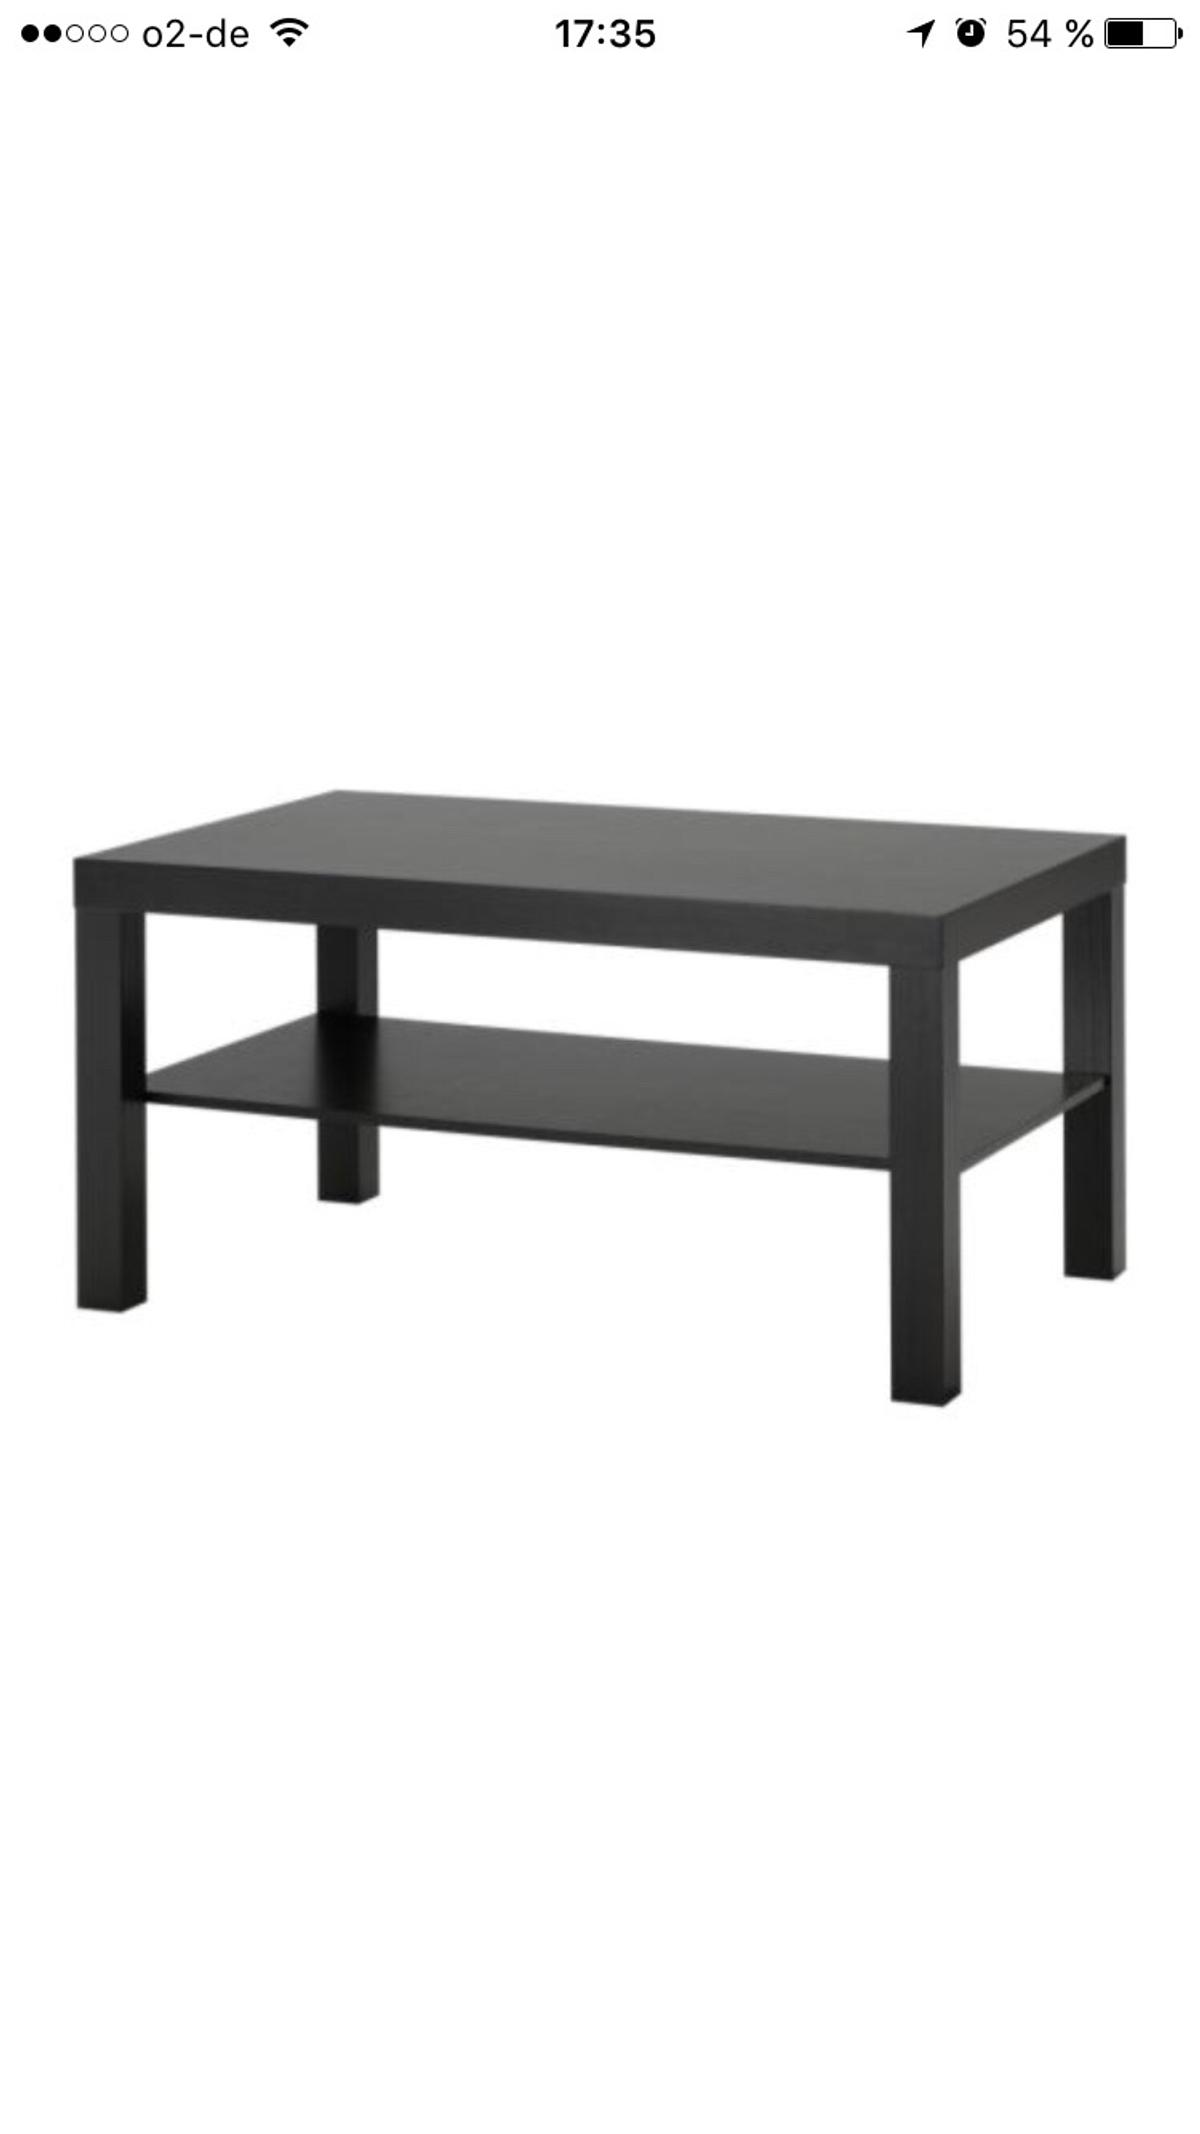 Couchtisch Florian Ikea Malm Couchtisch In 20539 Hamburg For 5 00 For Sale Shpock